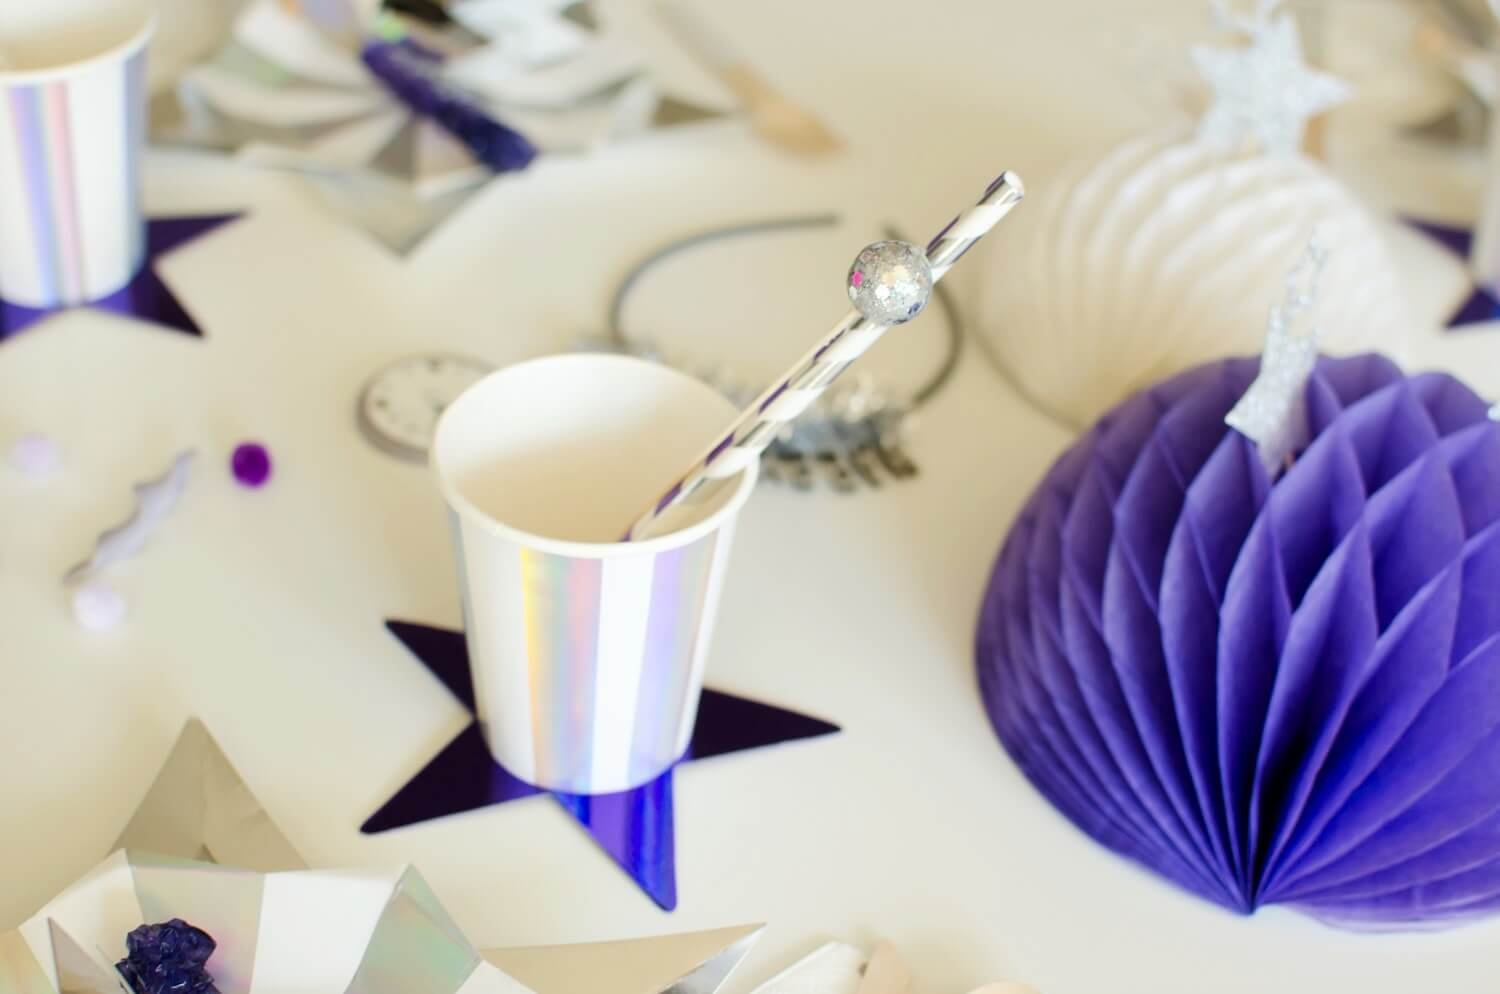 New Years party decor ideas. Loving the silver and ultra violet color